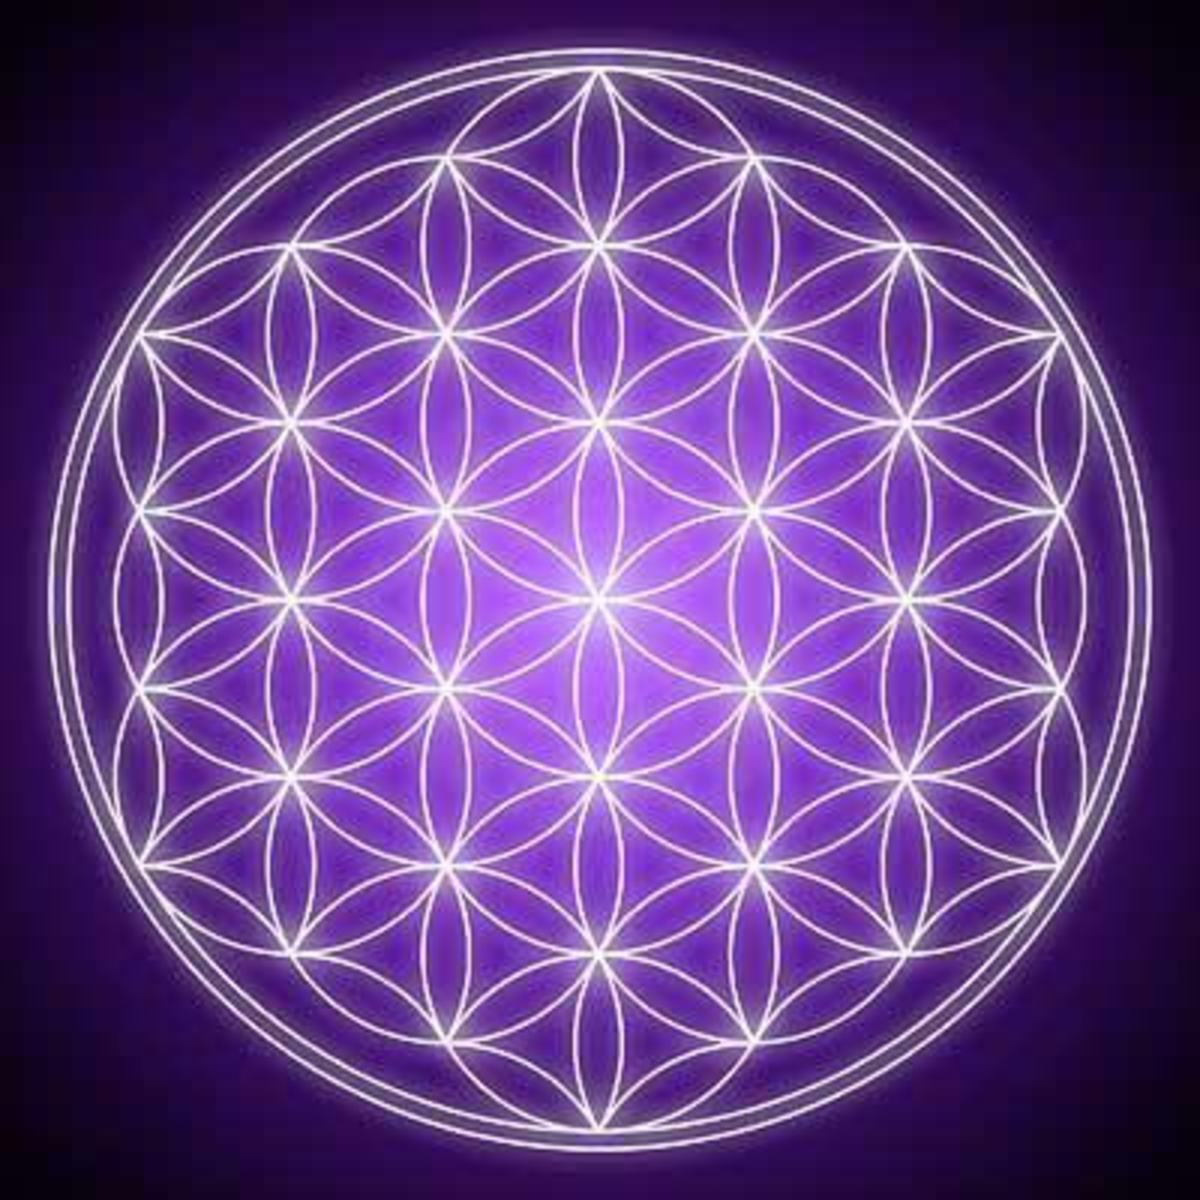 The Flower of Life is an ancient symbol representing the cycle of life and contains within it the five Platonic Solids.